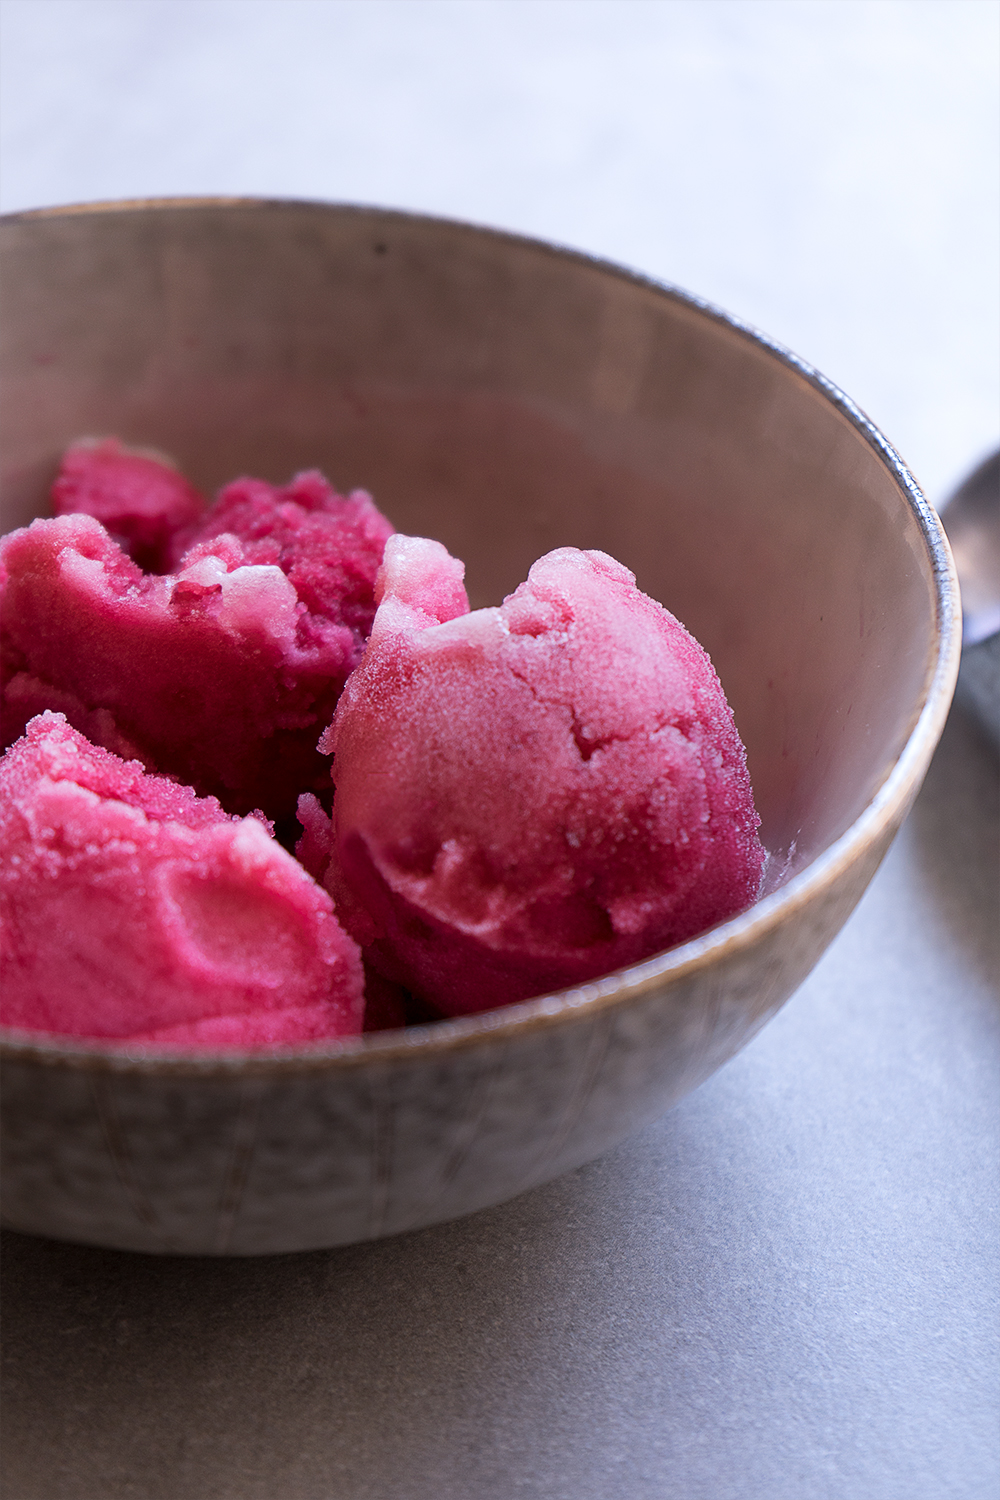 HIBISCUS SORBET - Delightfully refreshing the hibiscus sorbets will give new meaning to your afternoon.